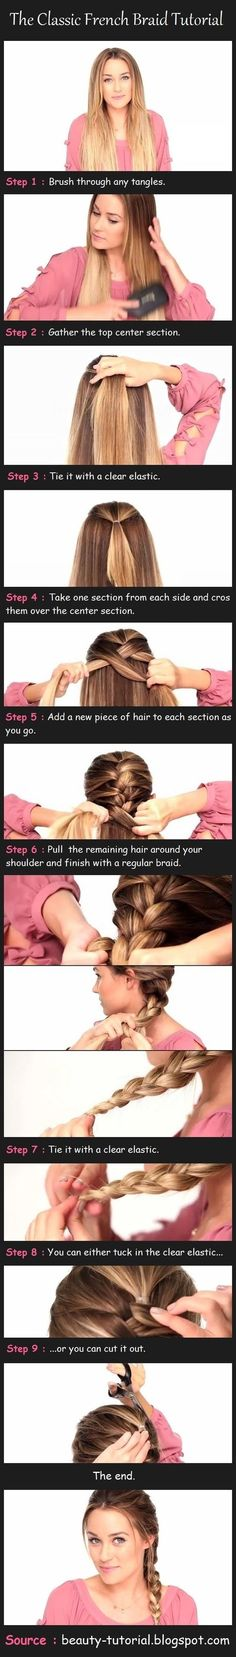 french braid tutorial for dummies